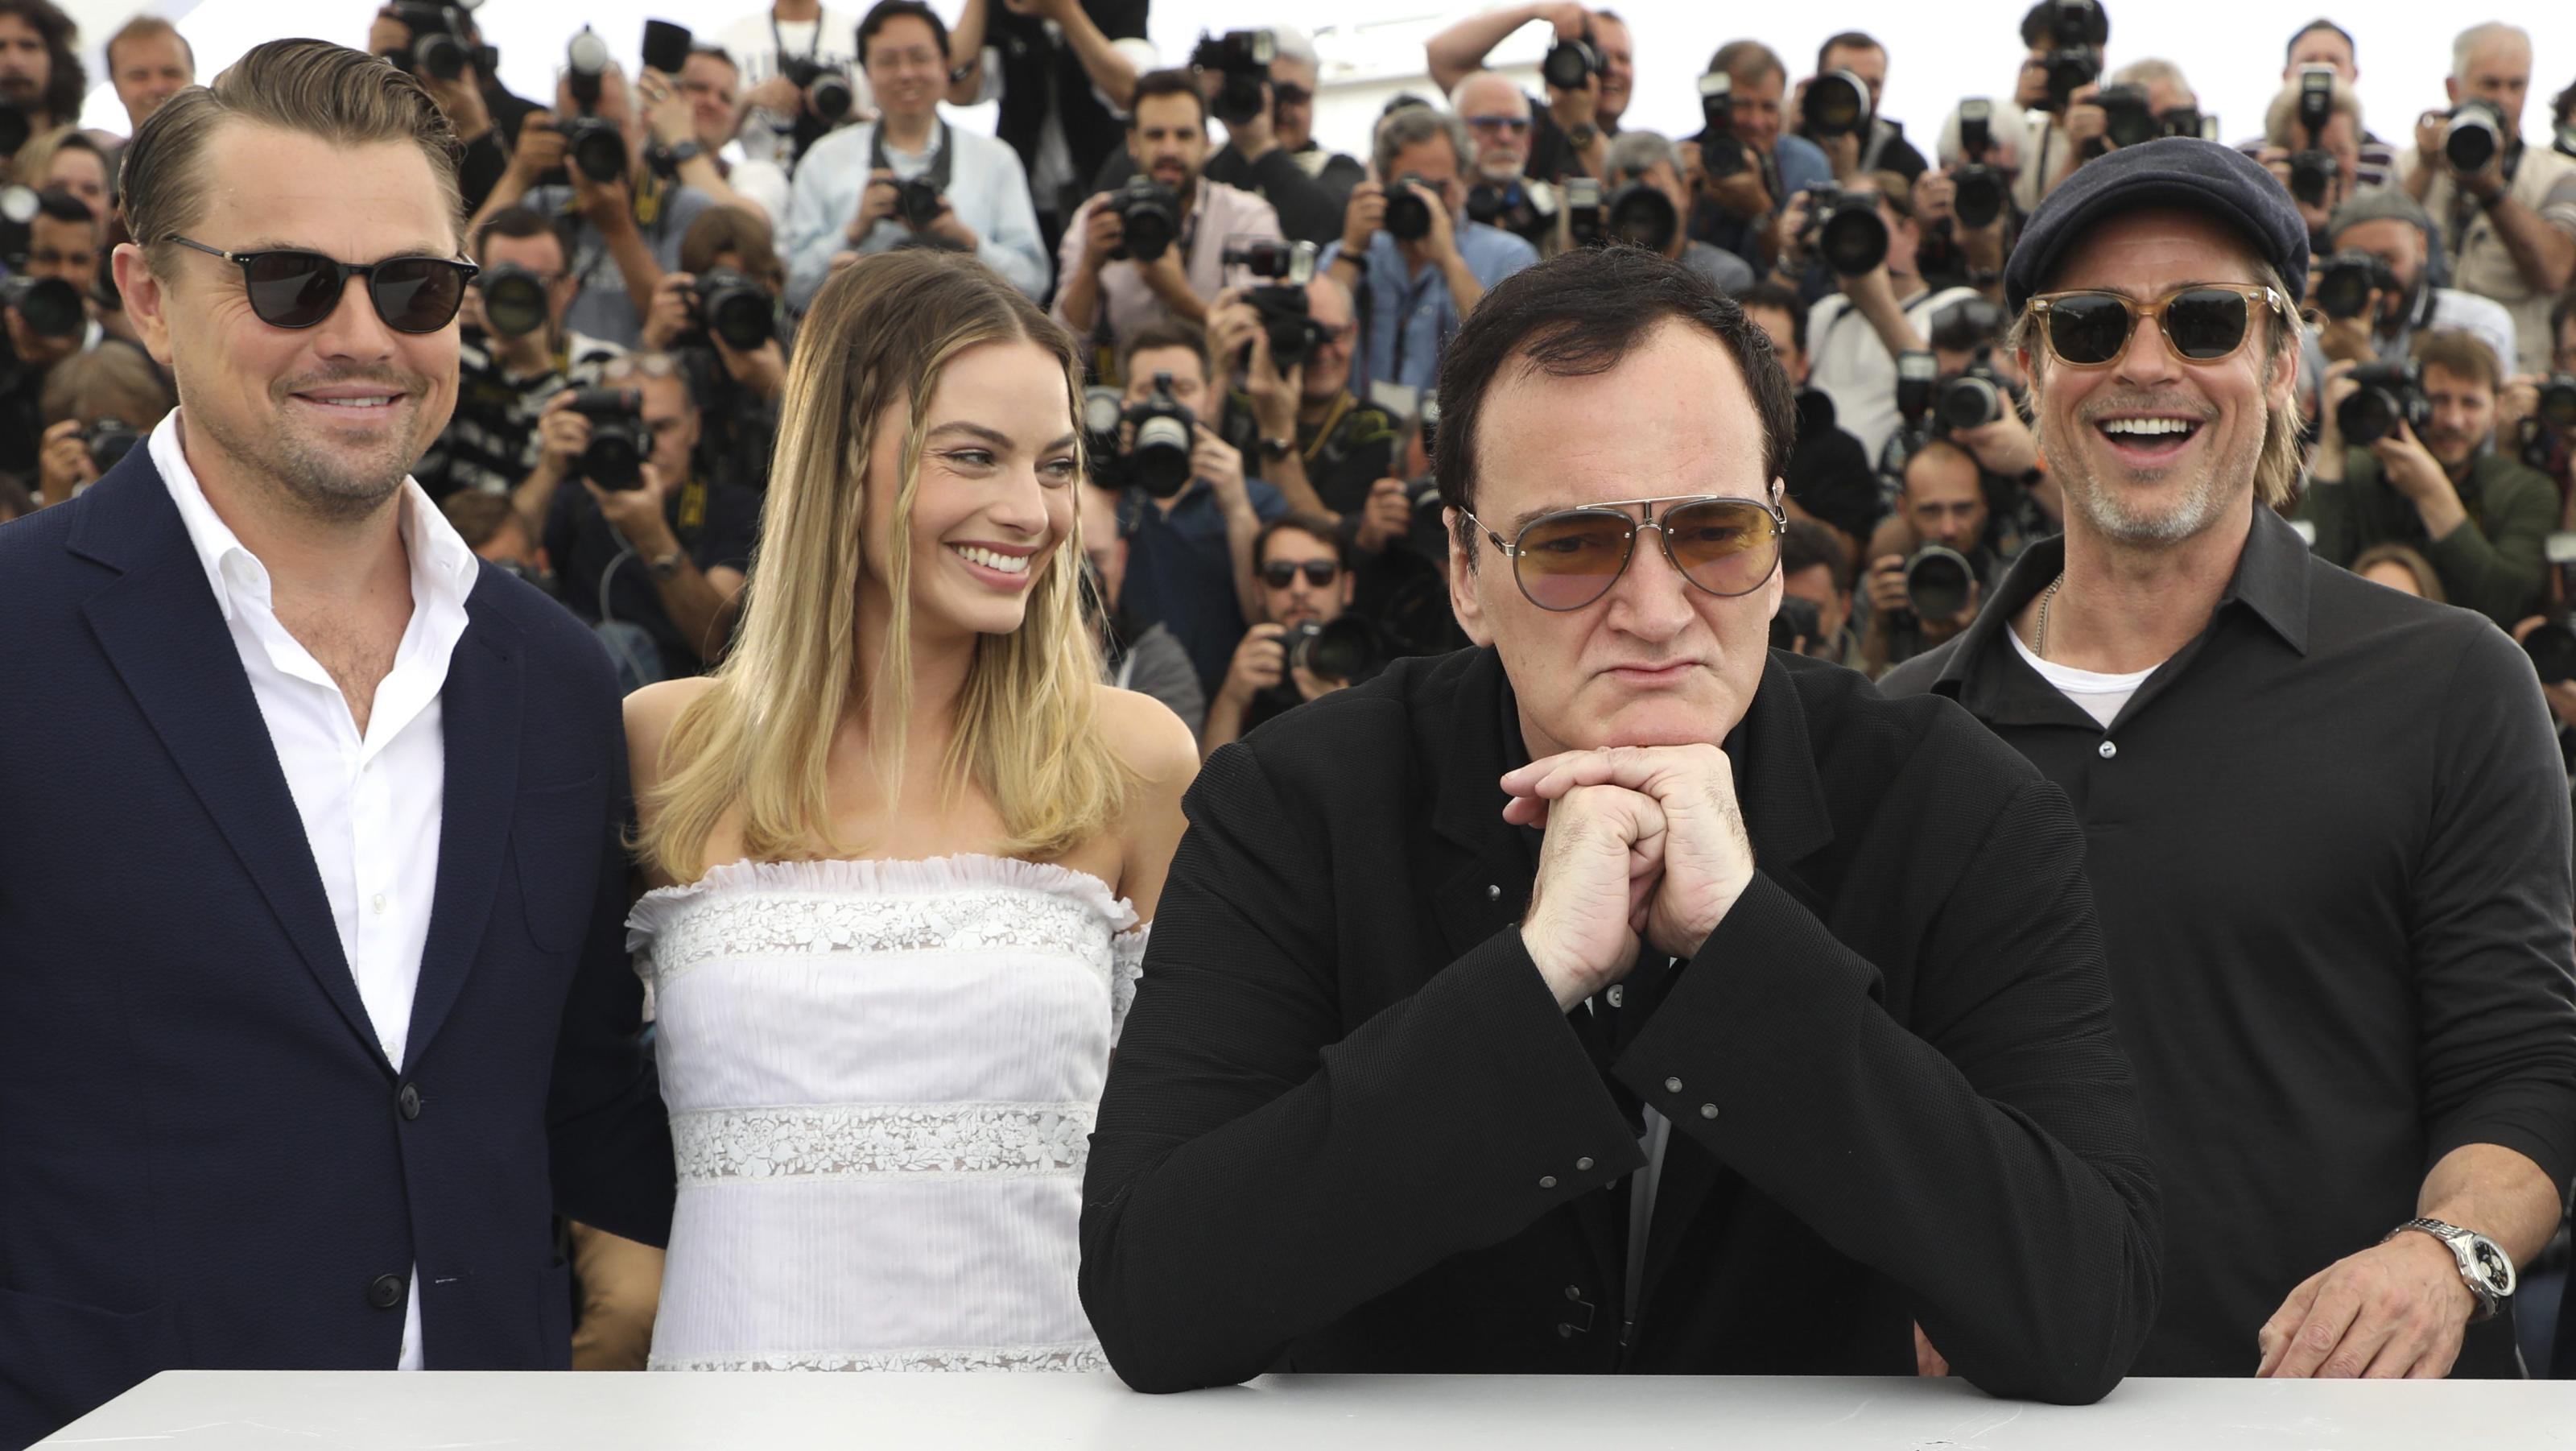 The longest standing ovations in Cannes Film Festival history